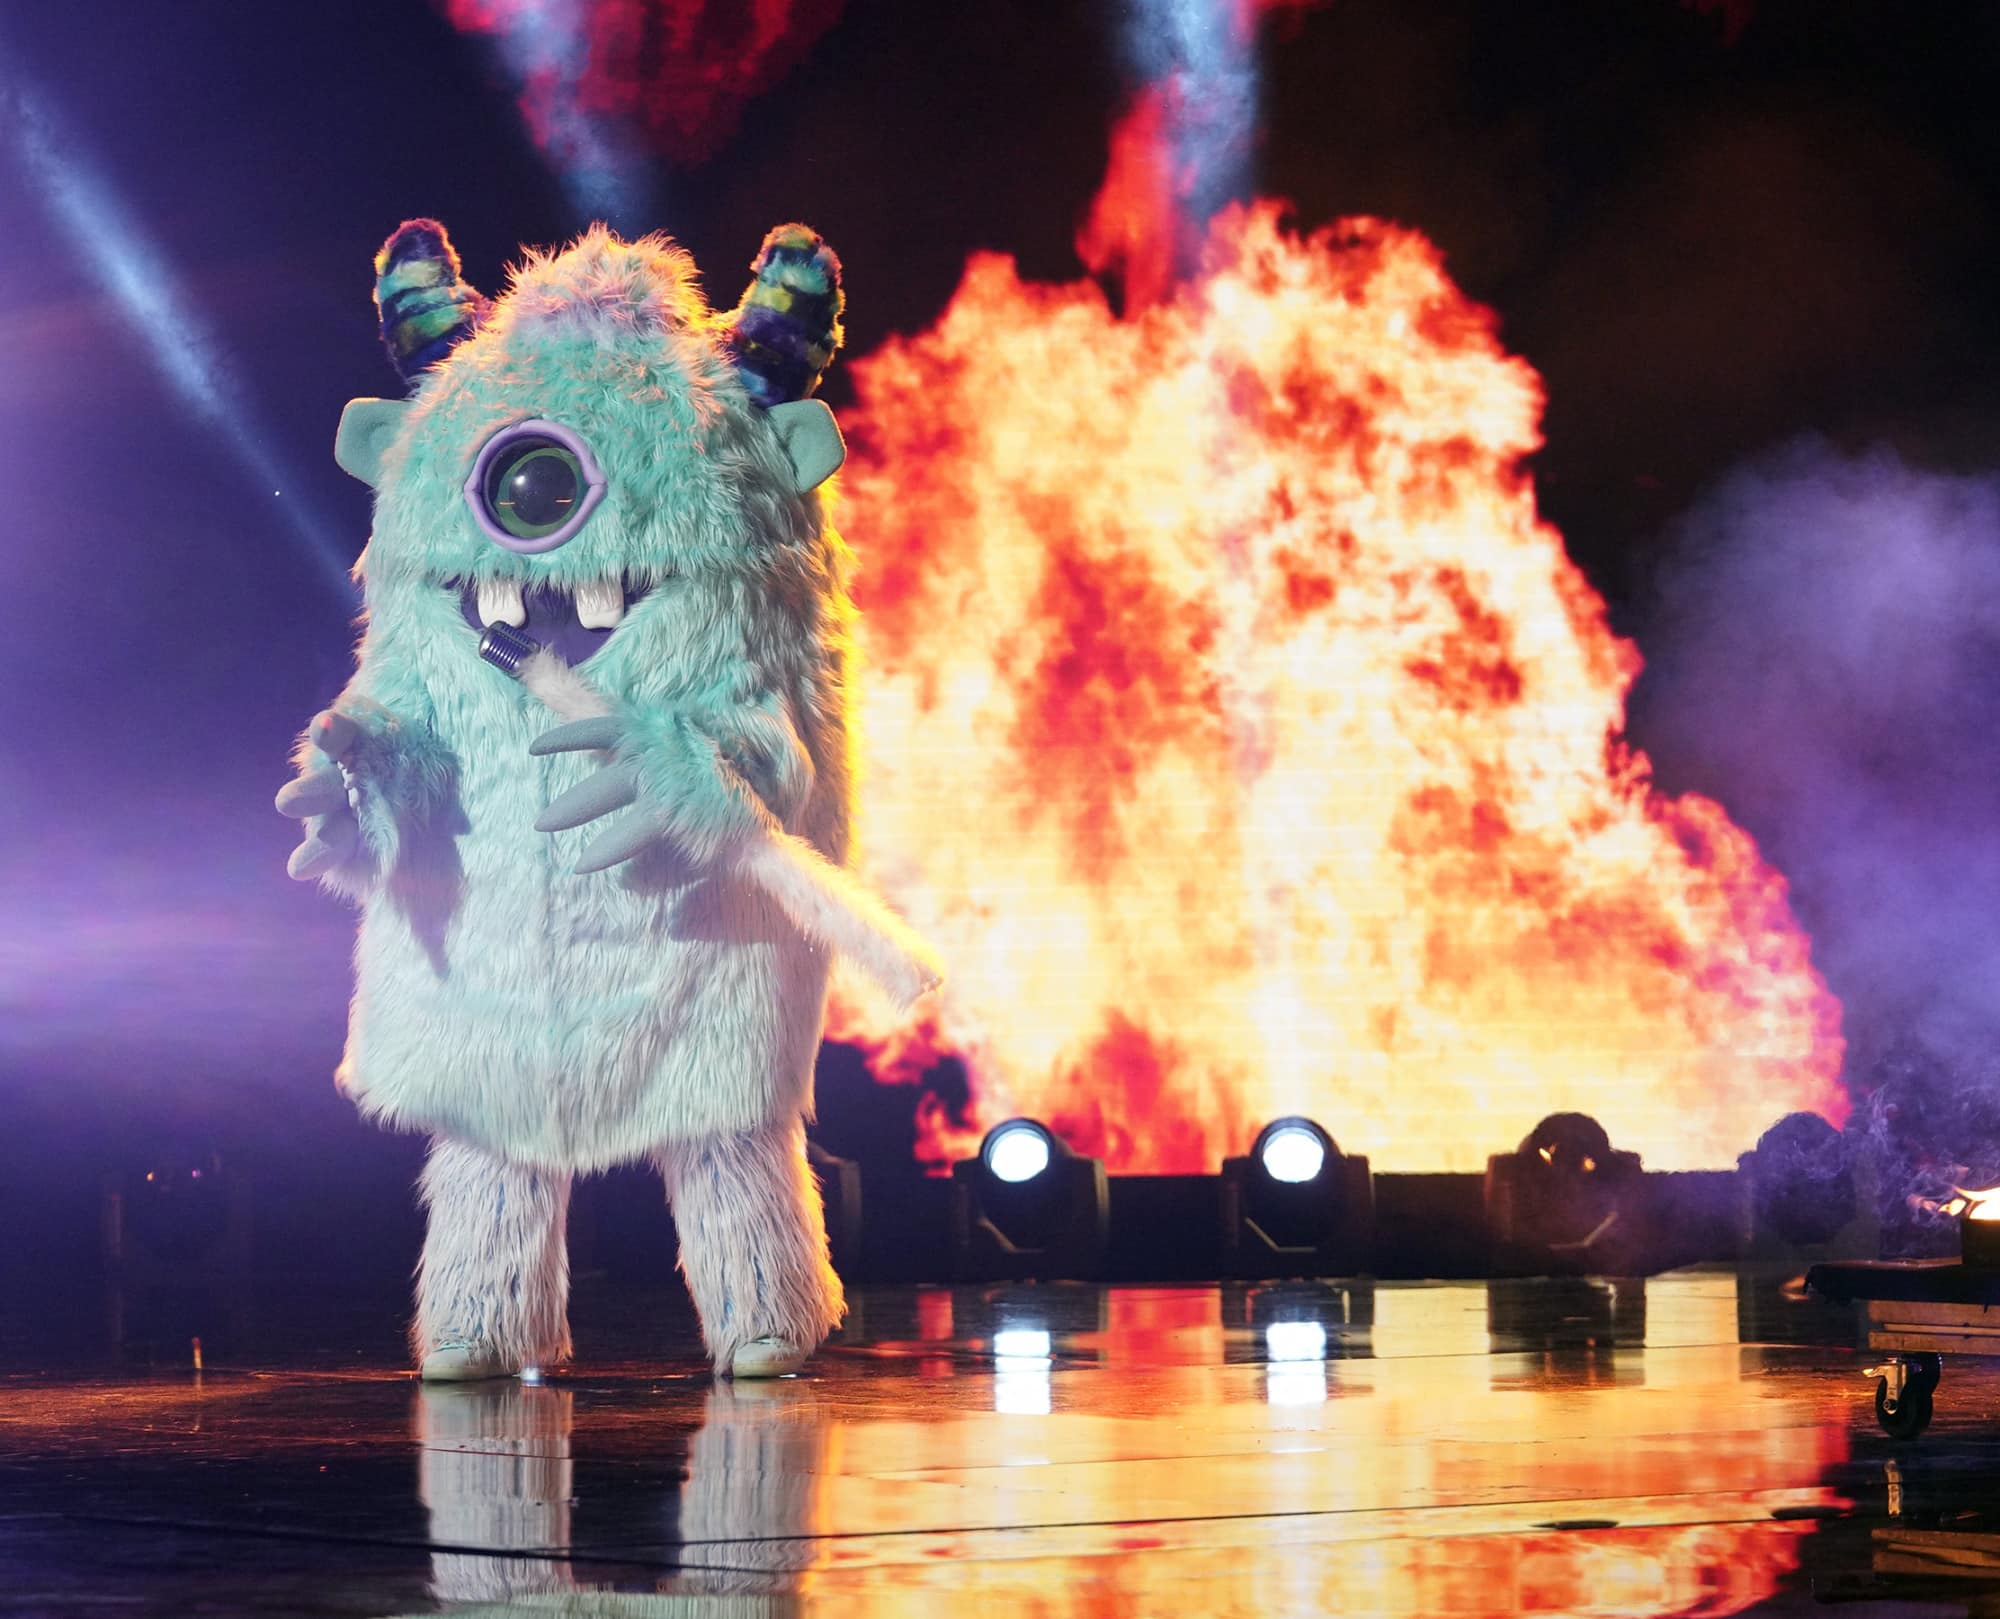 """THE MASKED SINGER: Monster in the all-new """"Five Masks No More"""" episode of THE MASKED SINGER airing Wednesday, Jan. 16 (9:00-10:00 PM ET/PT) on FOX. © 2019 FOX Broadcasting. CR: Michael Becker / FOX."""